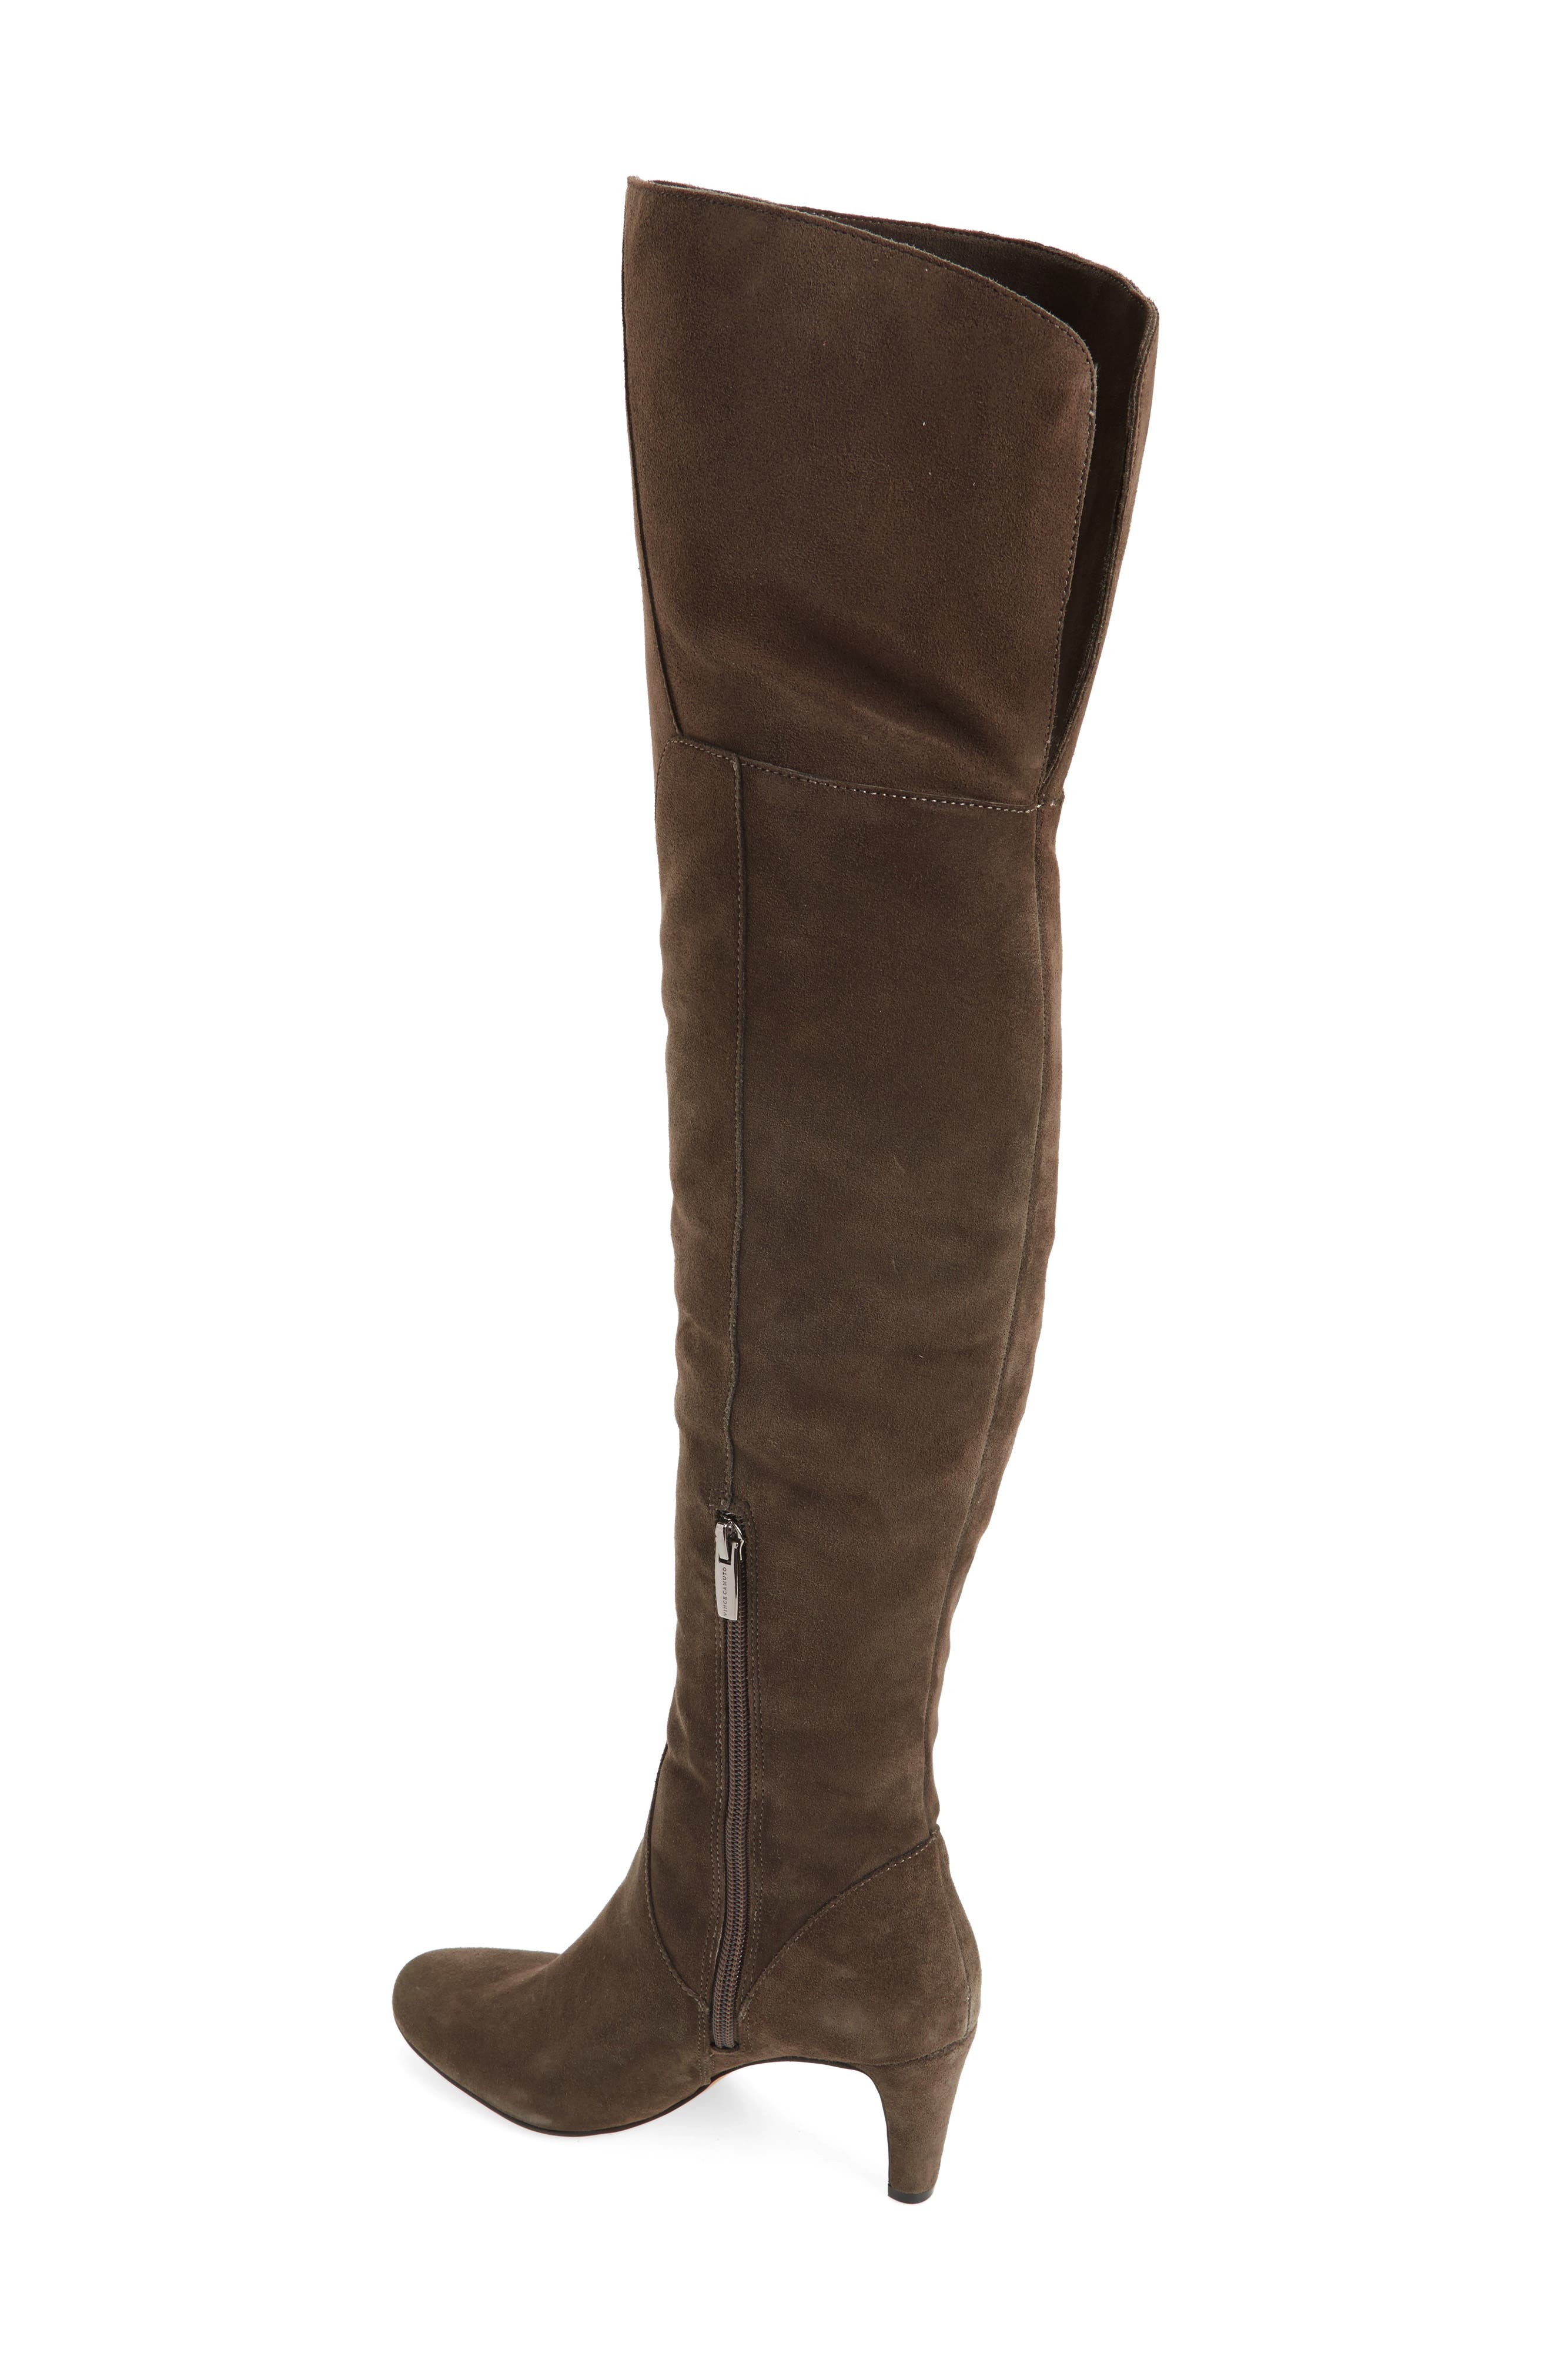 Armaceli Over the Knee Boot,                             Alternate thumbnail 8, color,